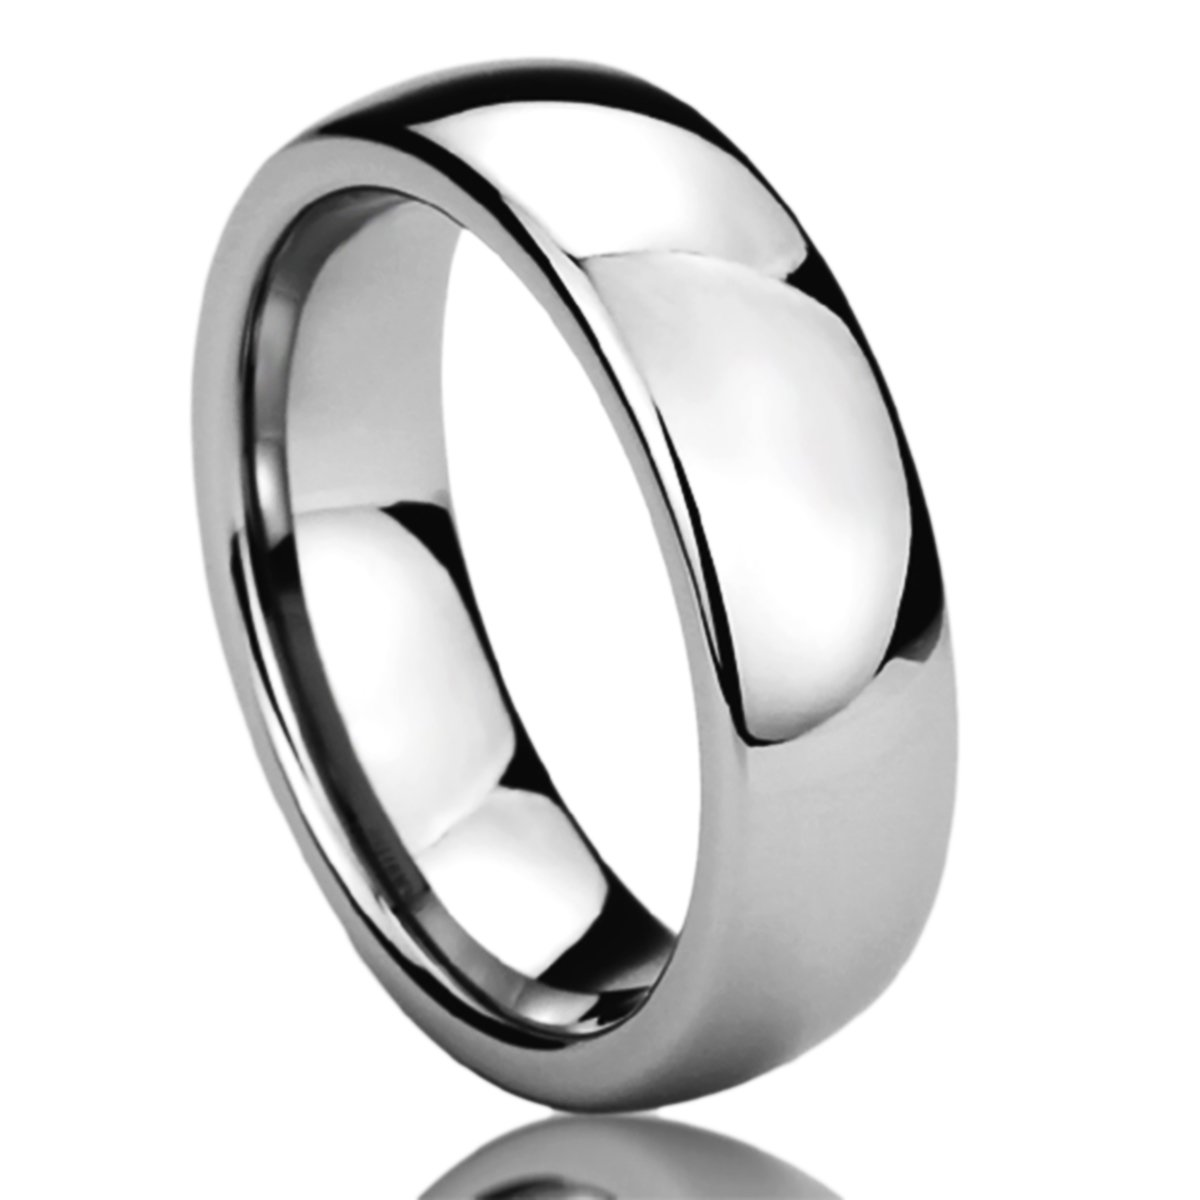 Prime Pristine 6MM Stainless Steel Mens Womens Rings High Polished Classy Domed Comfort Fit Wedding Bands